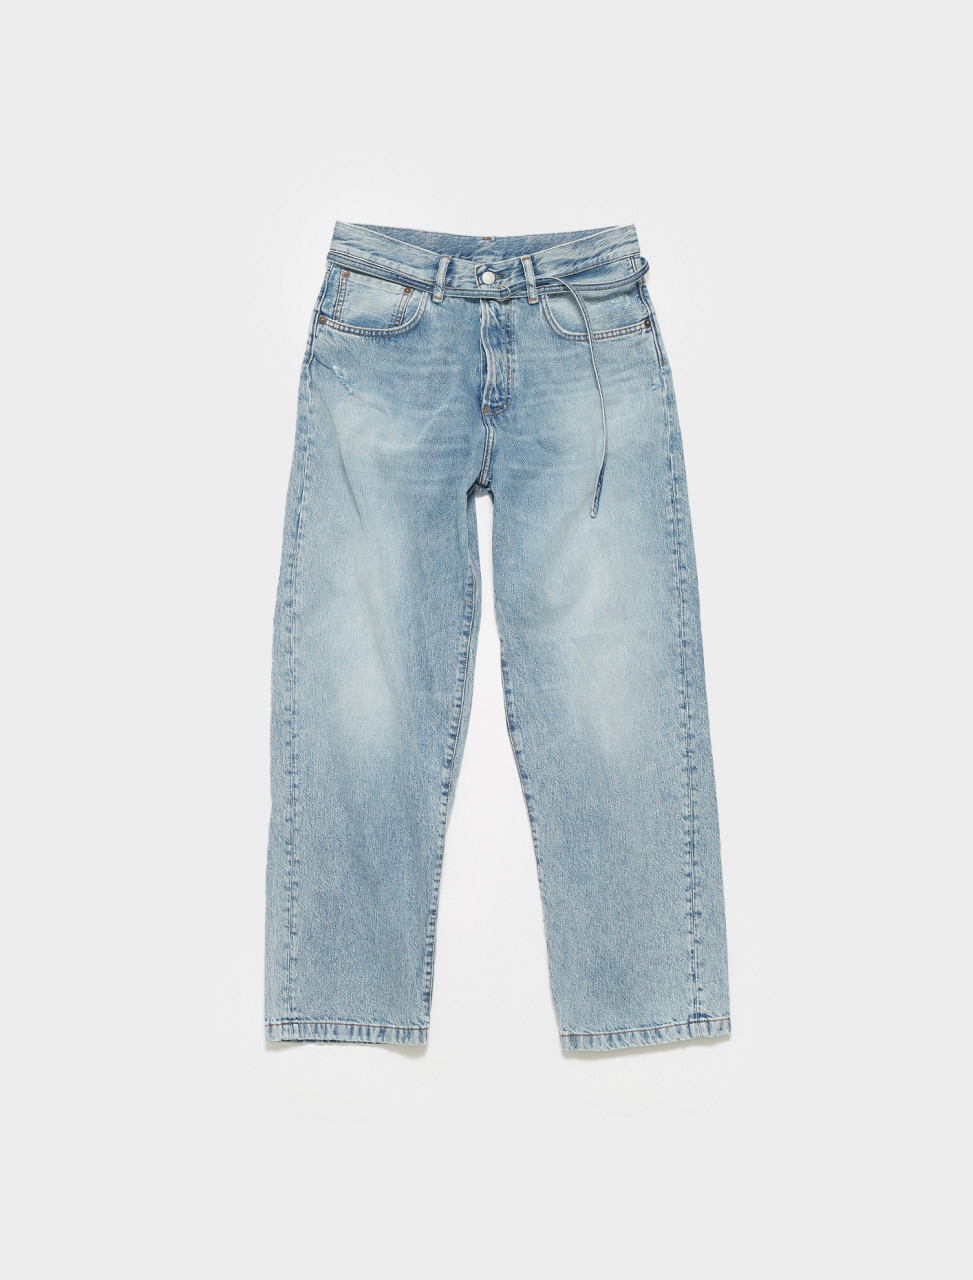 C00025-228 ACNE STUDIOS 1991 TOJ LIGHT BLUE TRASH JEANS IN LIGHT BLUE